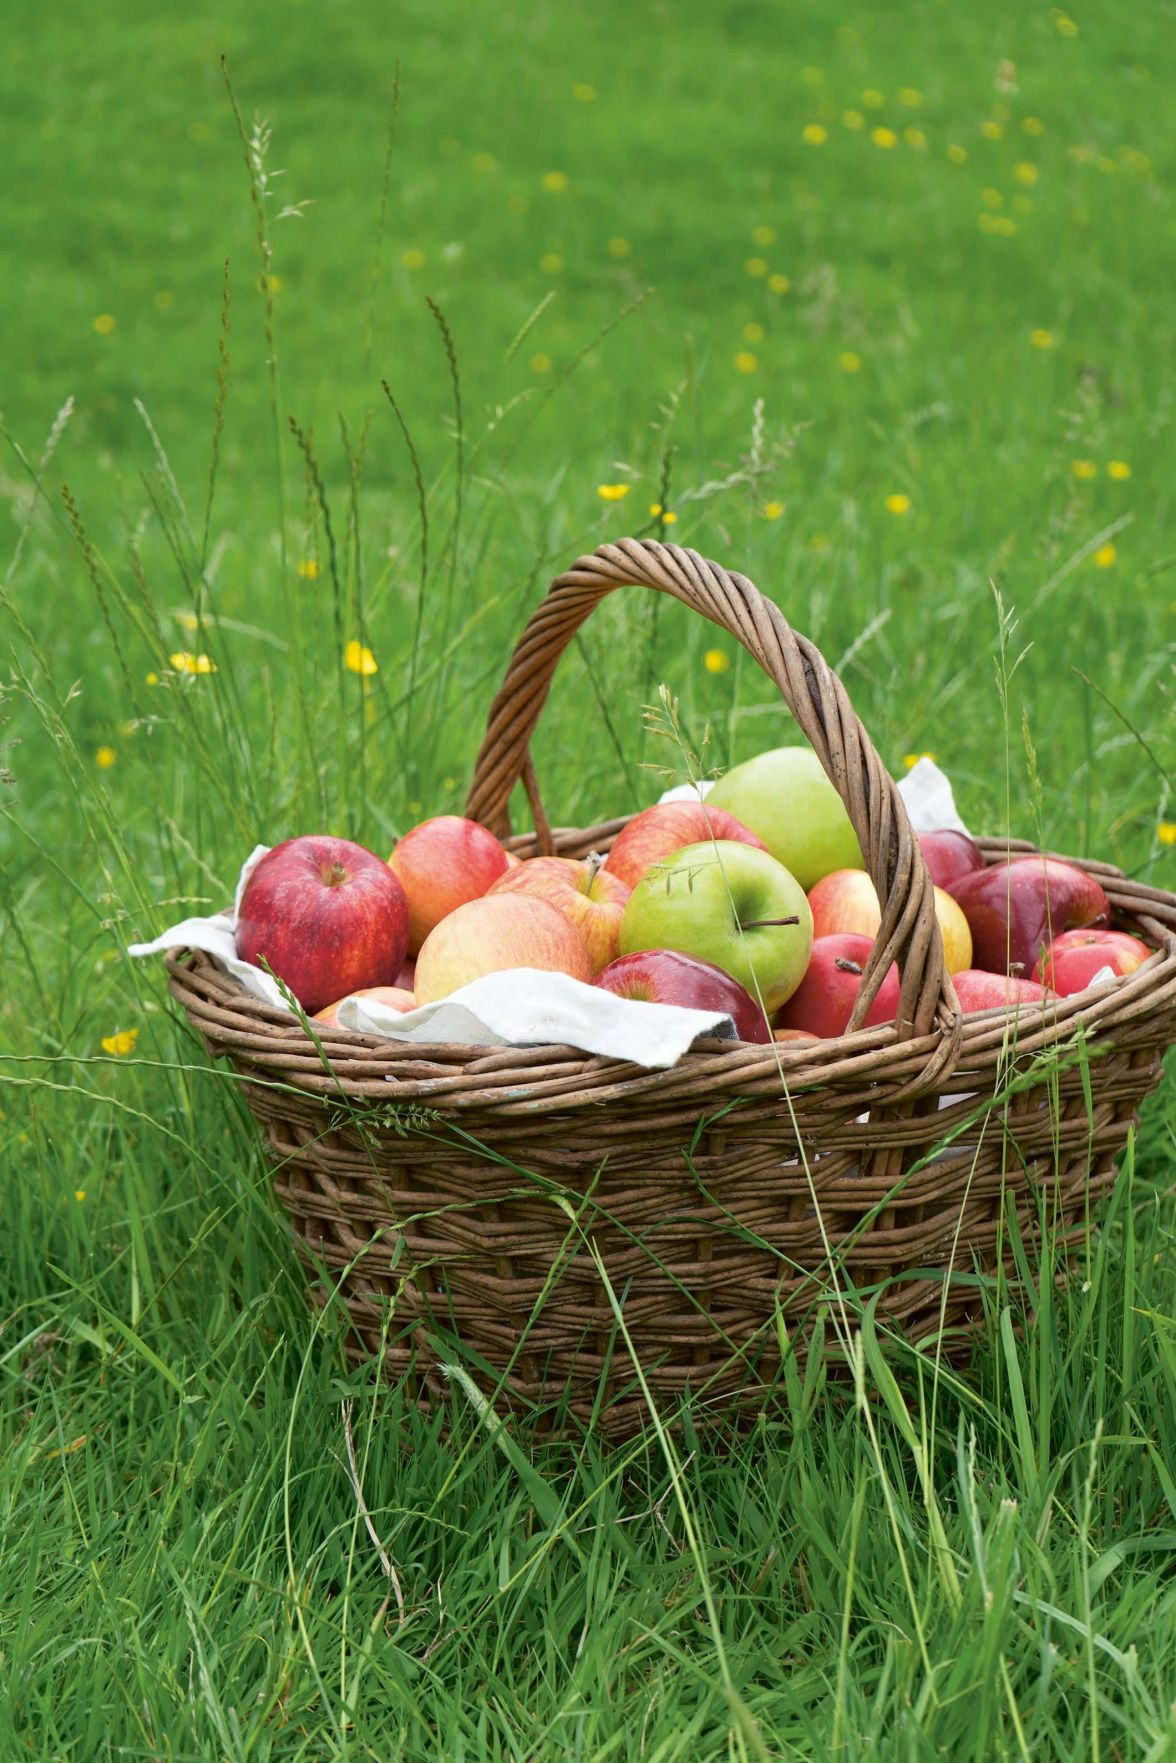 Stephen Fries: More than enough ways to enjoy 'an apple a day'